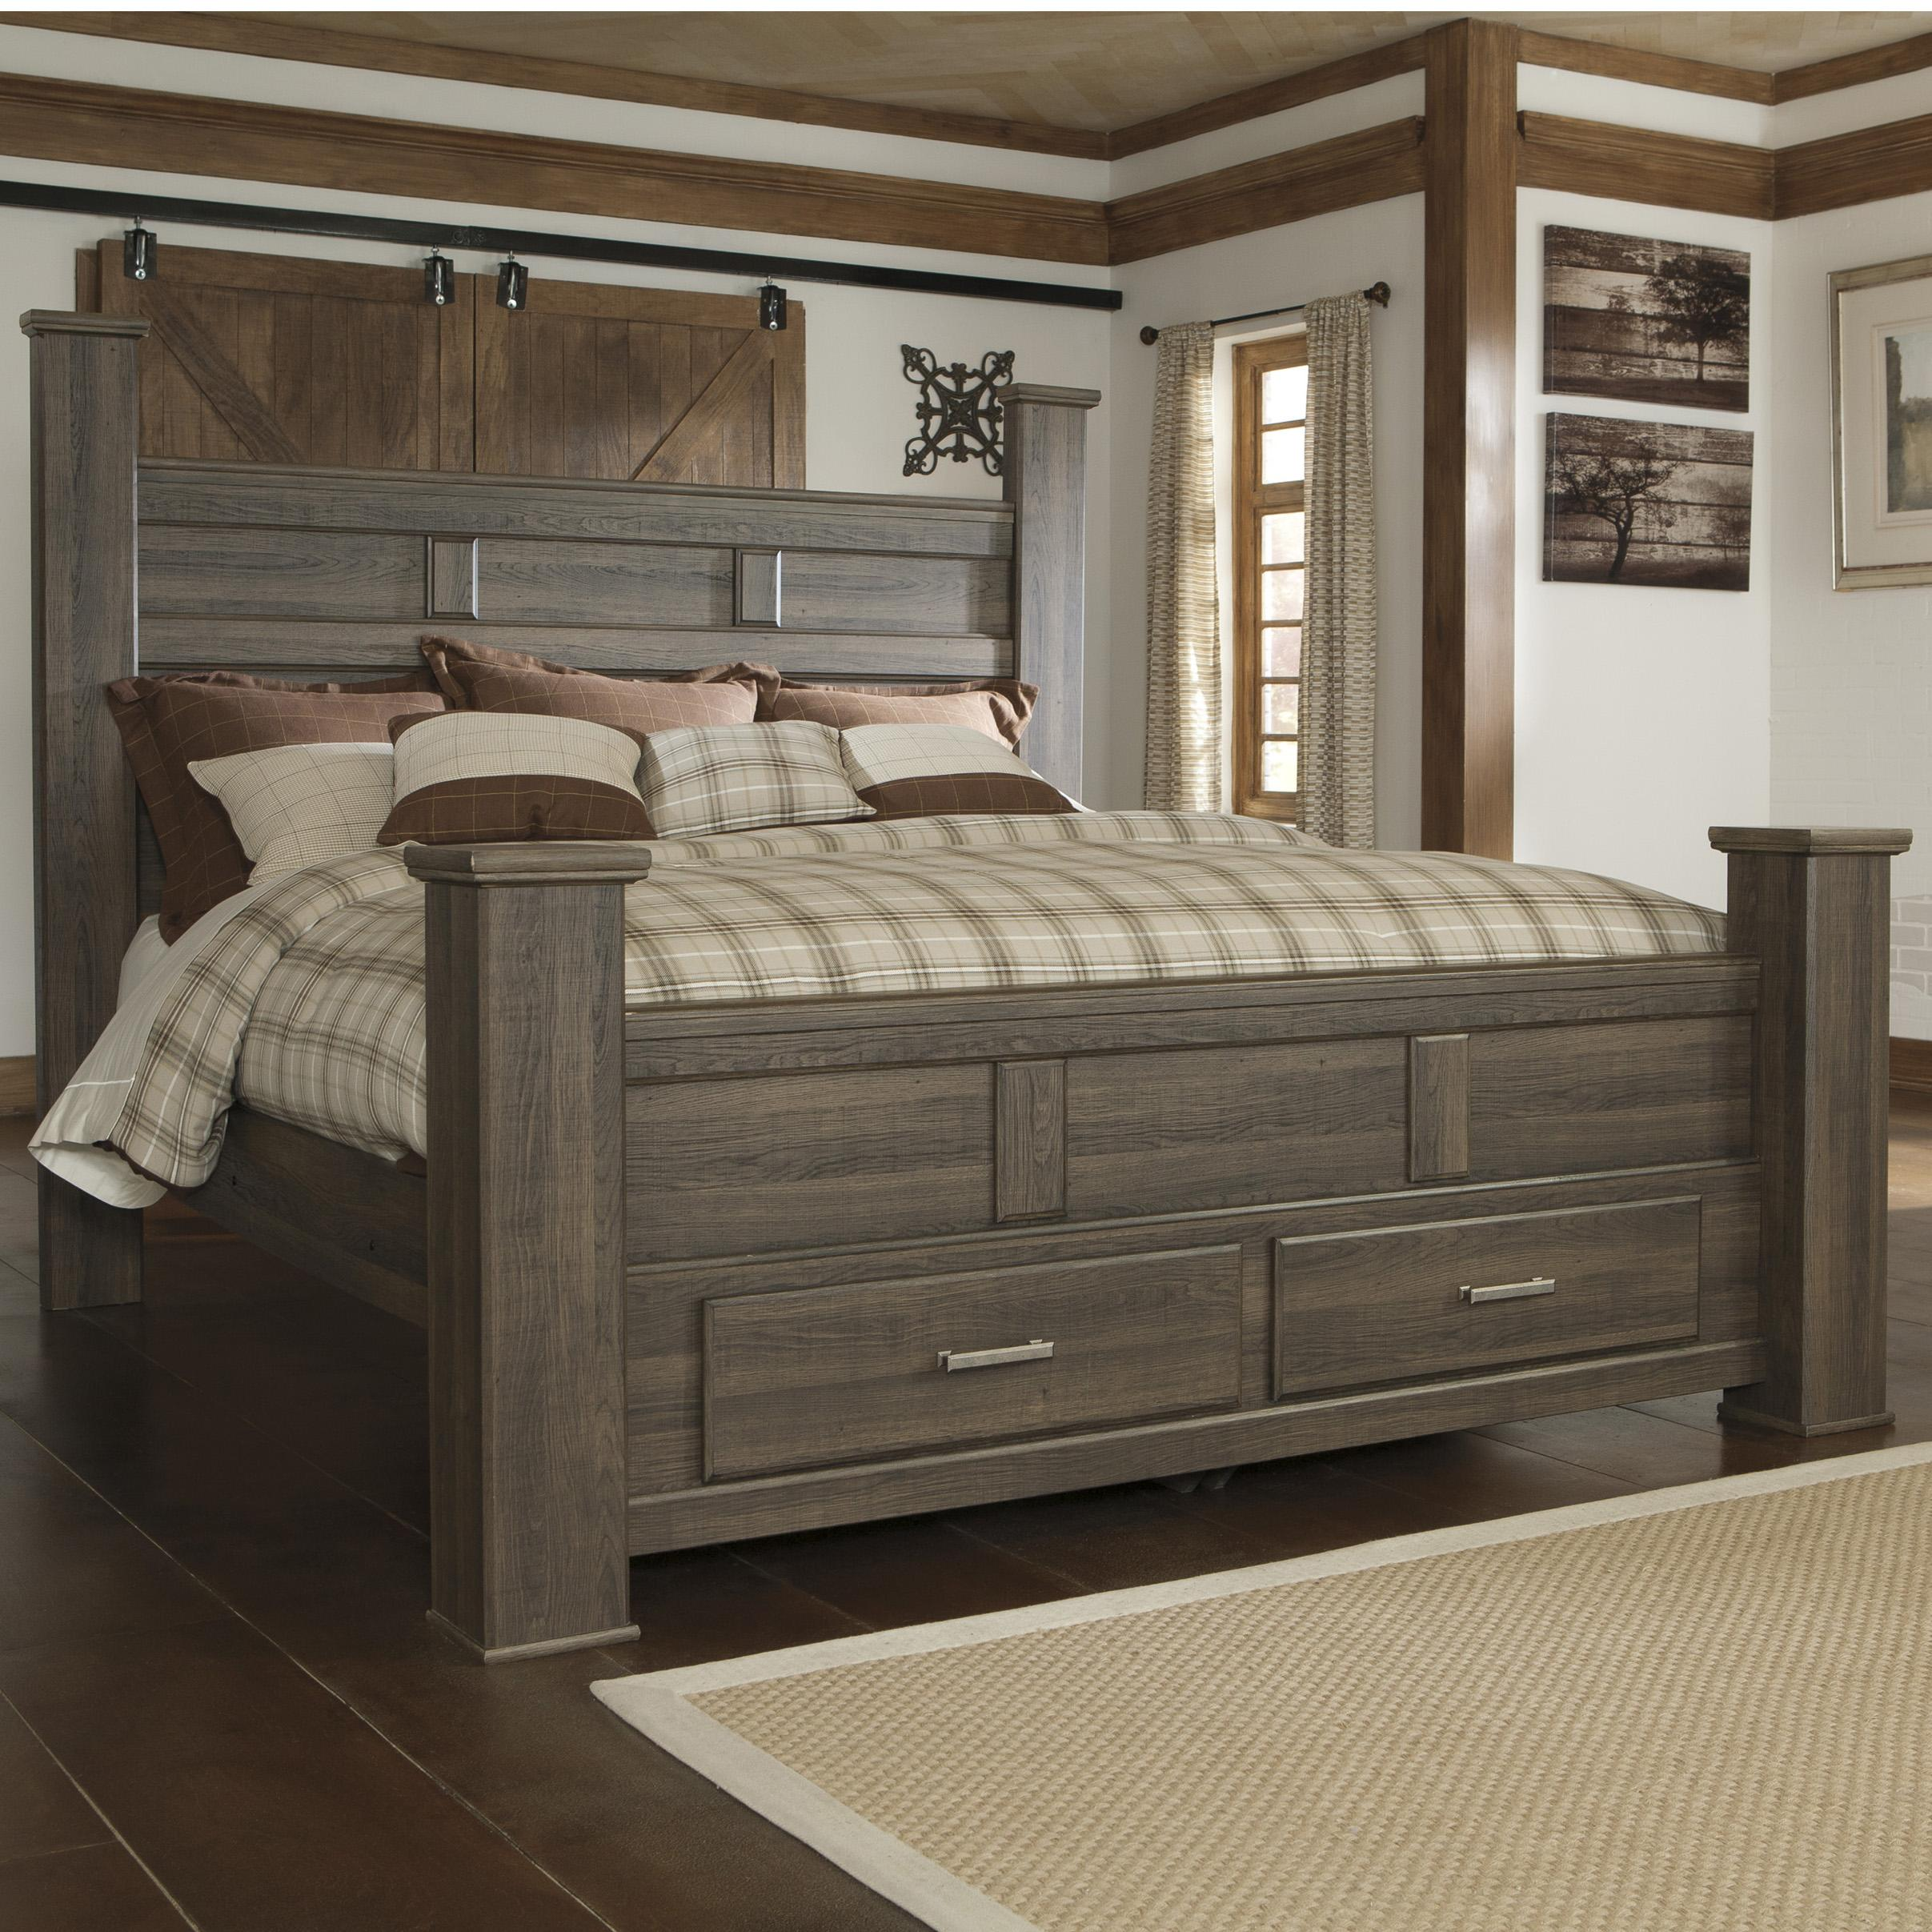 Signature design by ashley juararo transitional king for Signature bedroom furniture